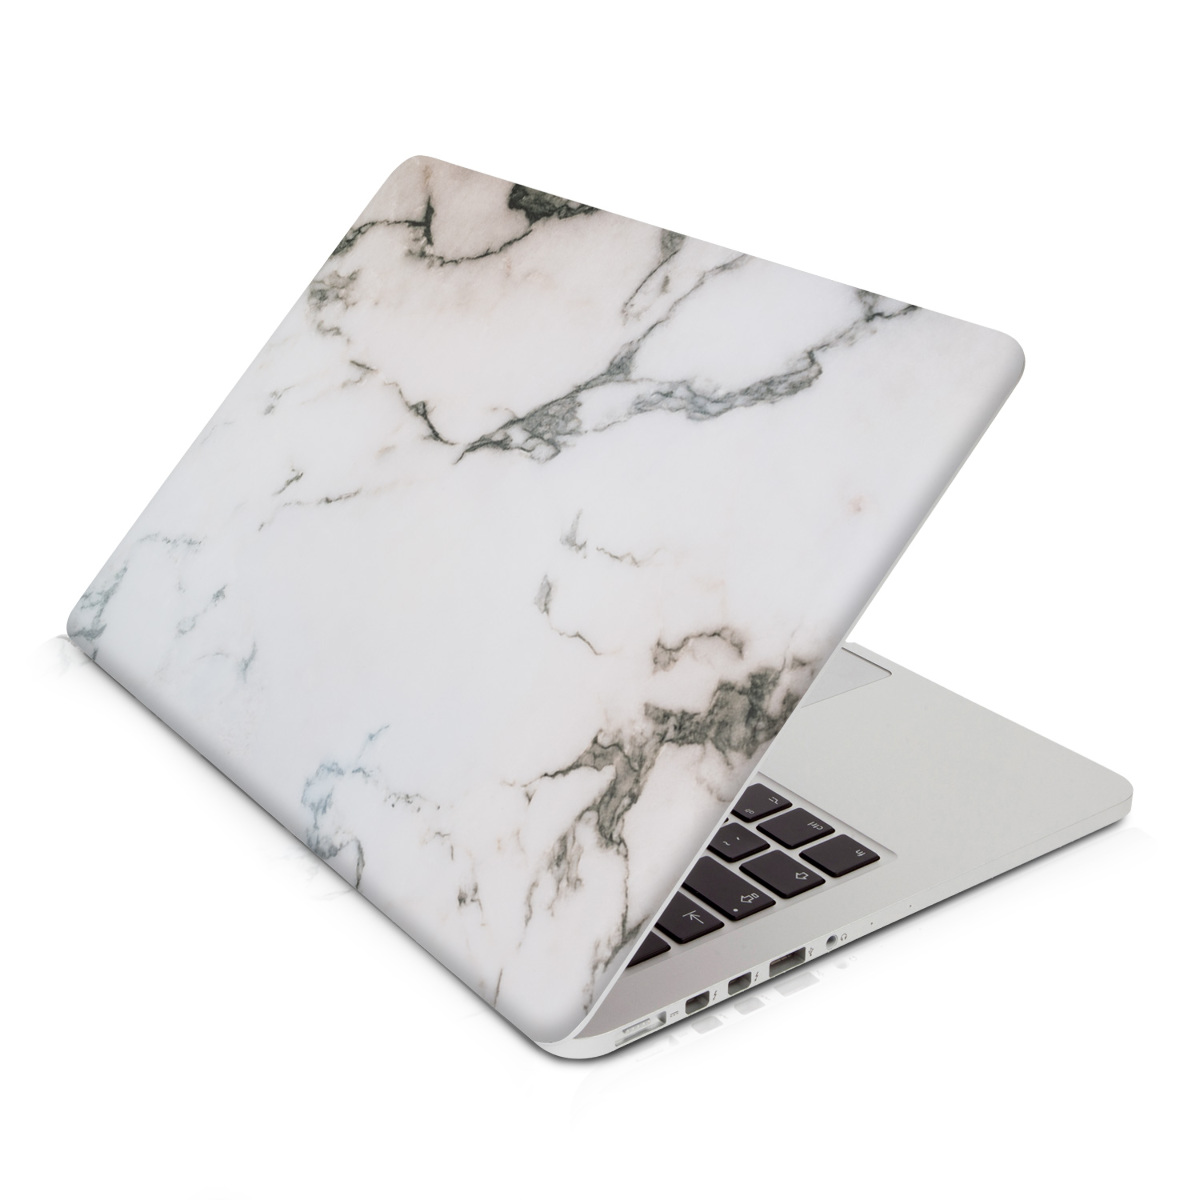 ADHESIVO-PARA-APPLE-MACBOOK-PRO-13-034-SIN-RETINA-STICKER-SKIN-DECAL-COVER-FUNDA